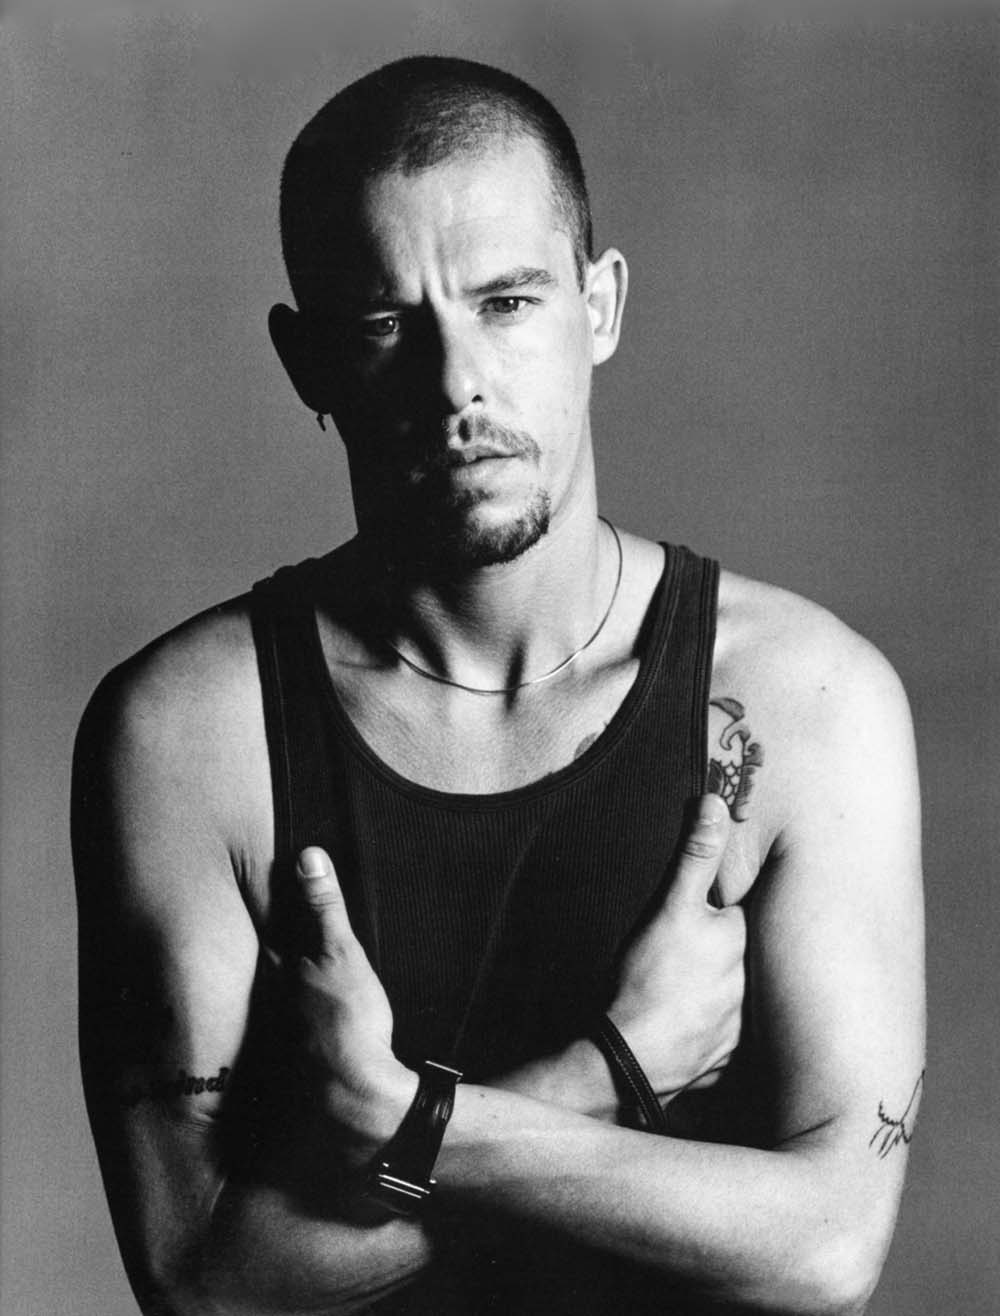 Lee Alexander McQueen March 1969 - Febuary 2010